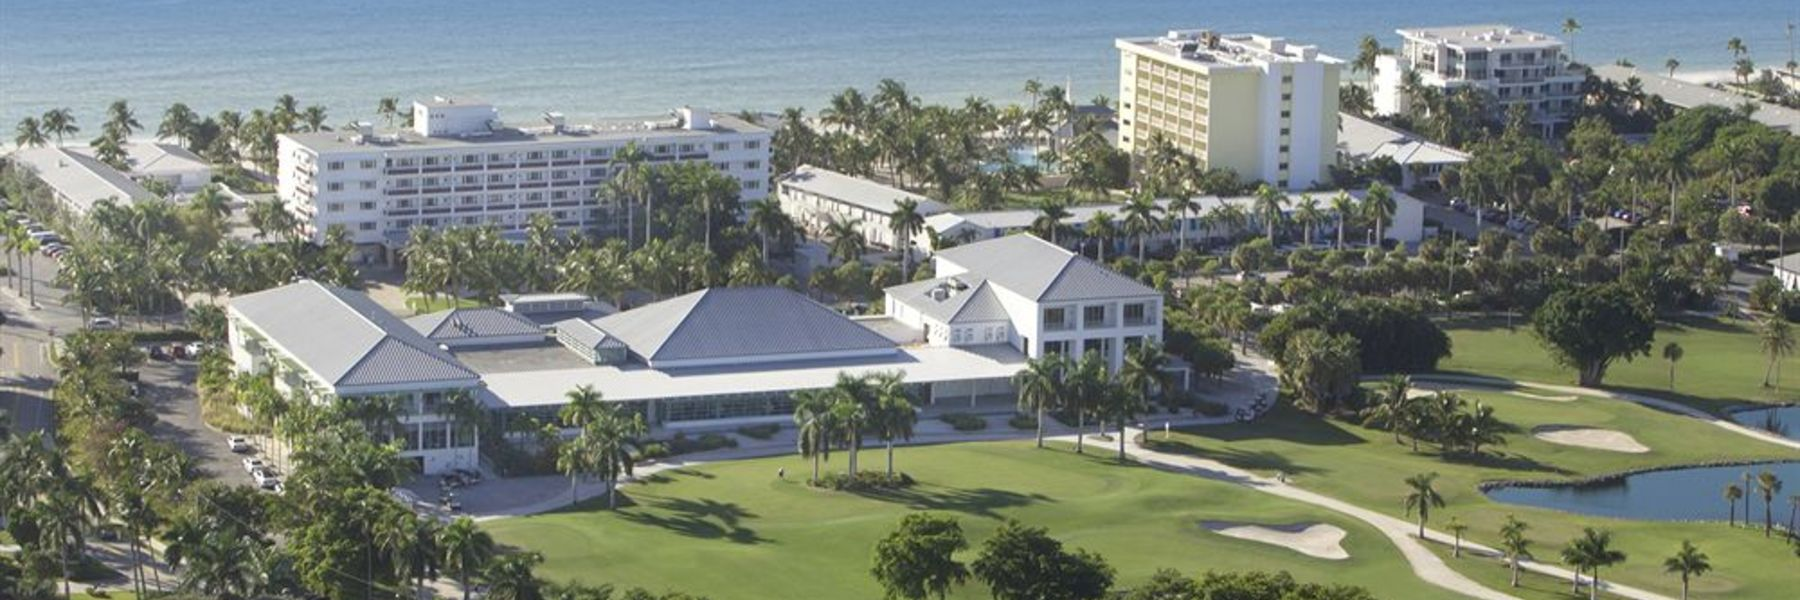 Golf Vacation Package - Warm Up at Naples Beach Hotel & Club Golf Getaway for  $494.00 per day!